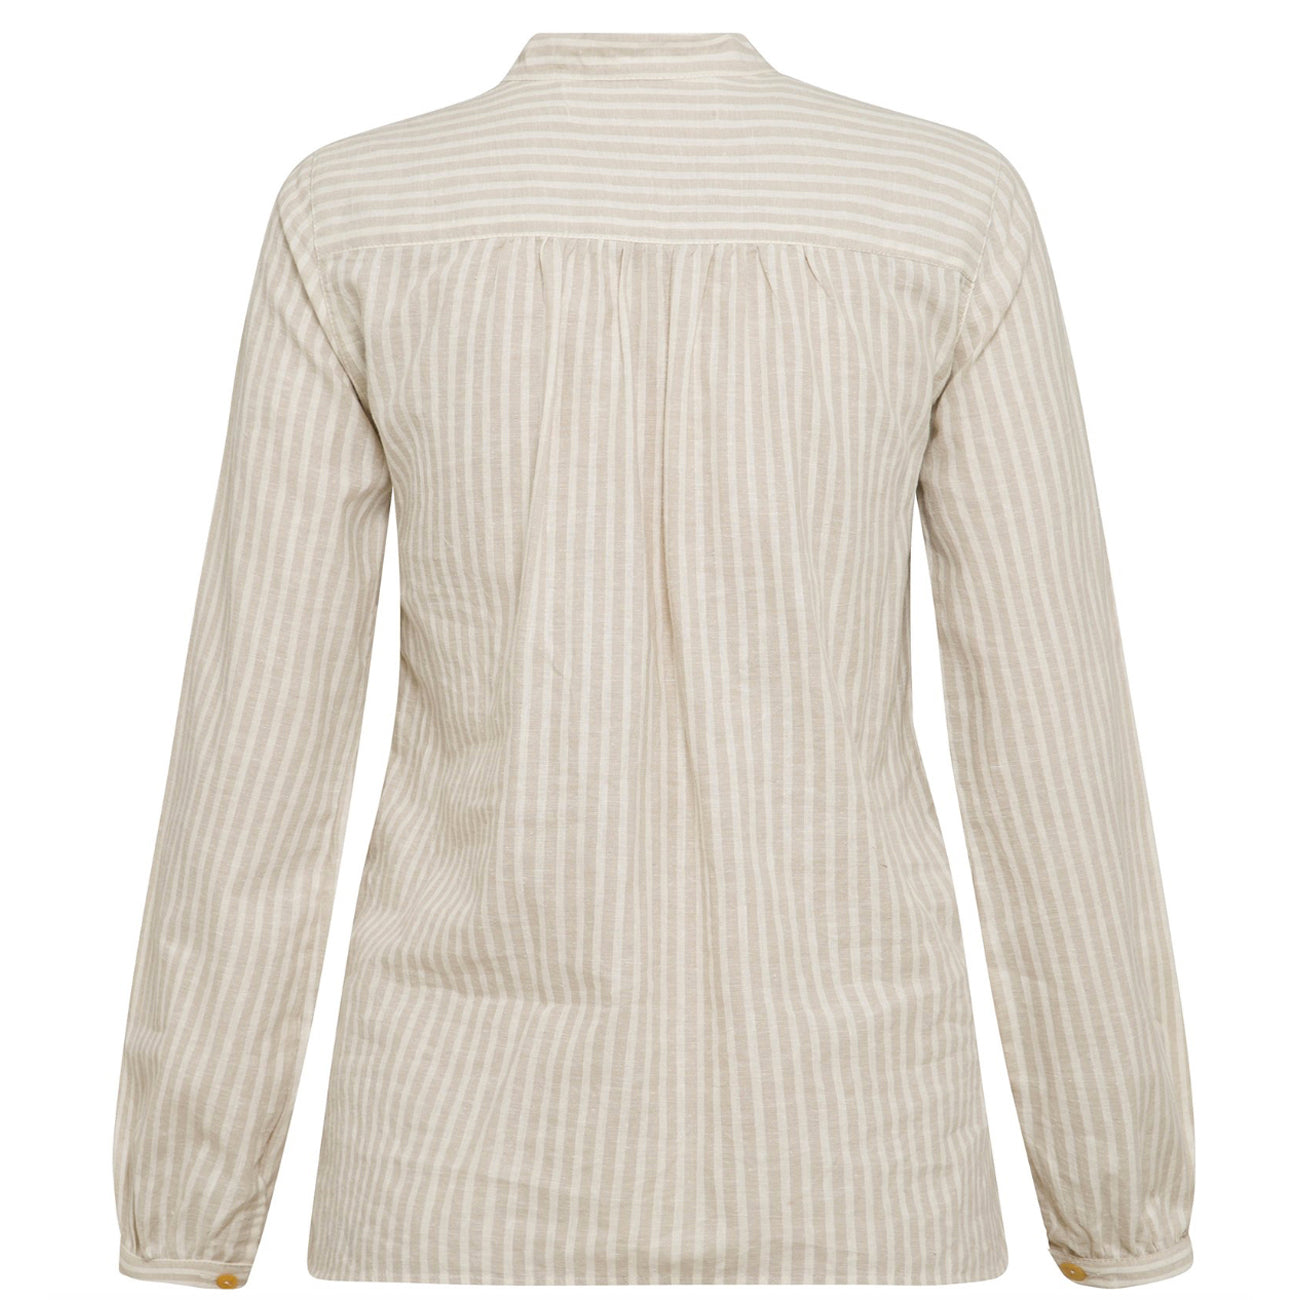 lou shirt in oat & twig stripe